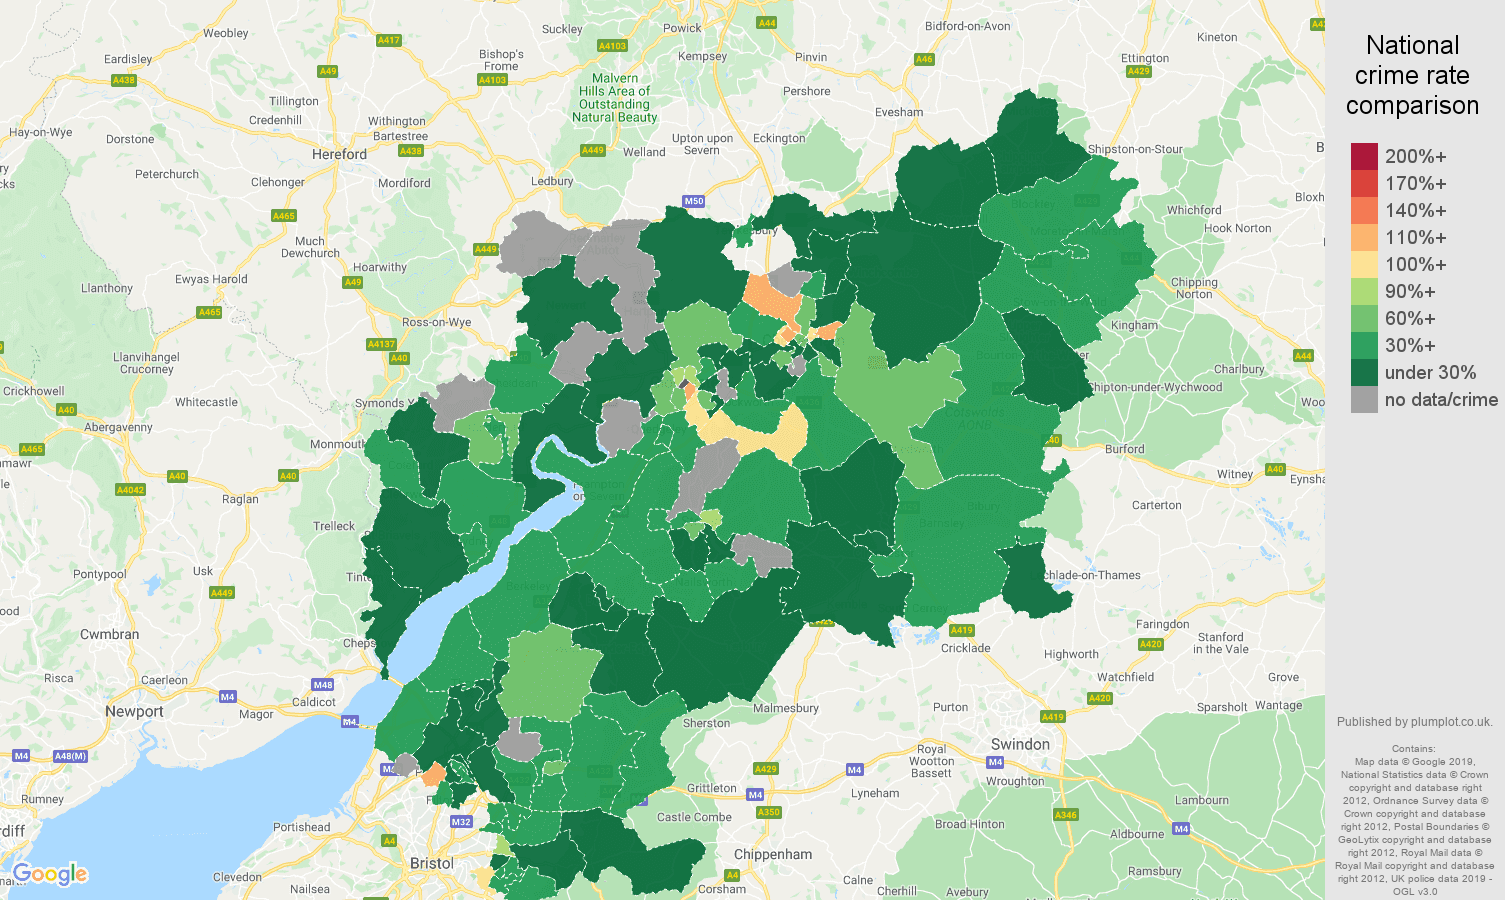 Gloucestershire other crime rate comparison map